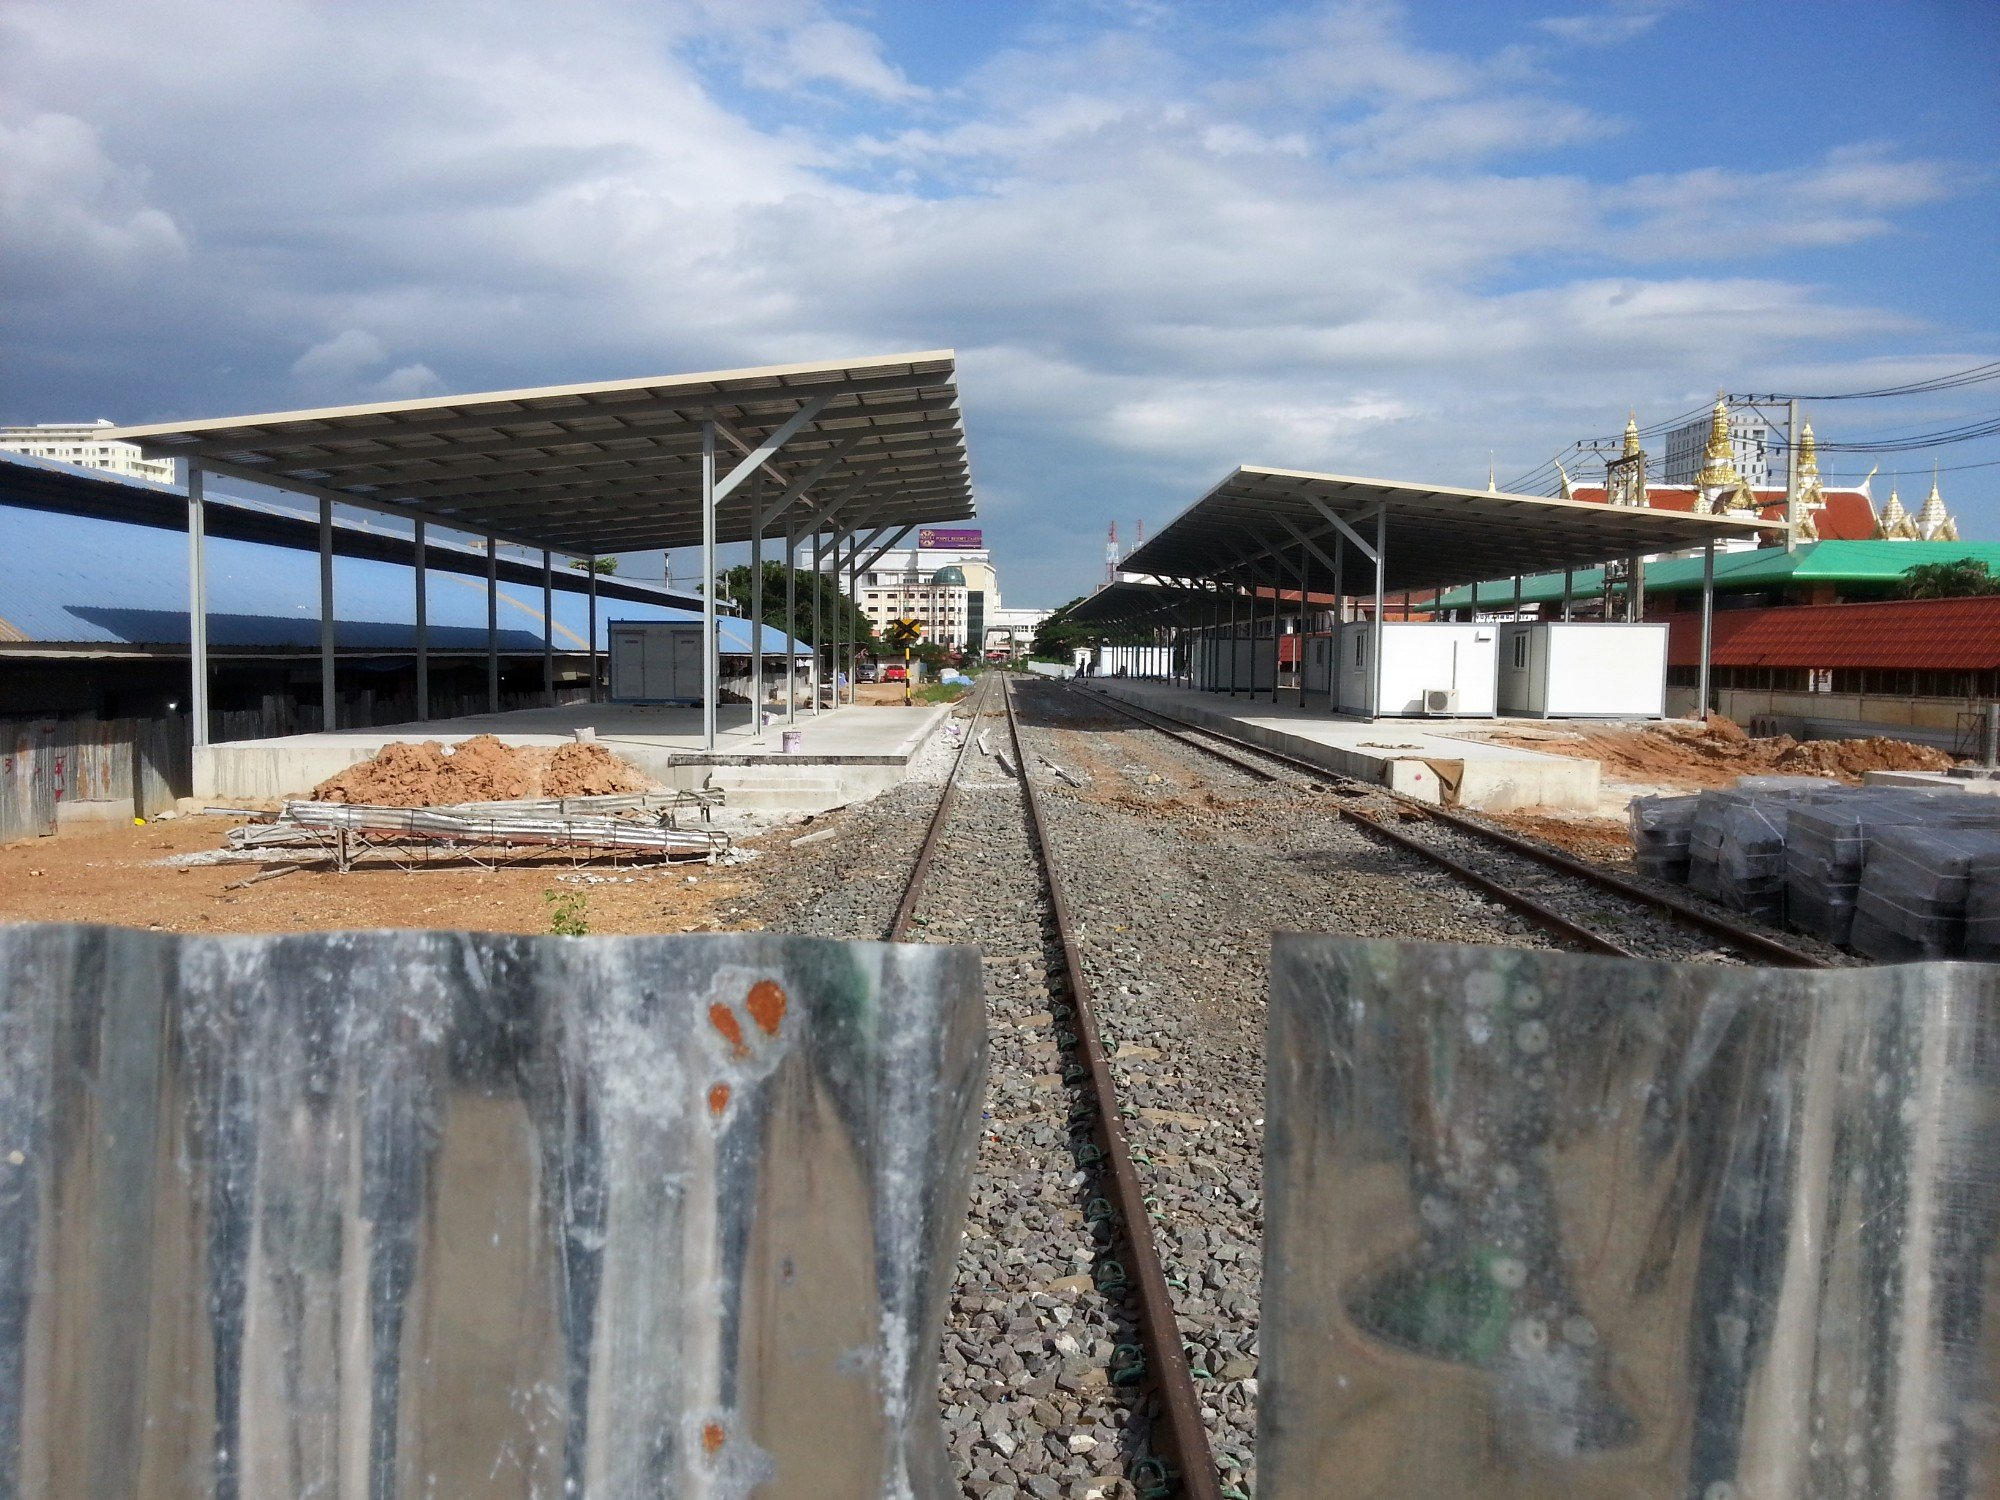 Train station at the Thailand-Cambodia border under construction